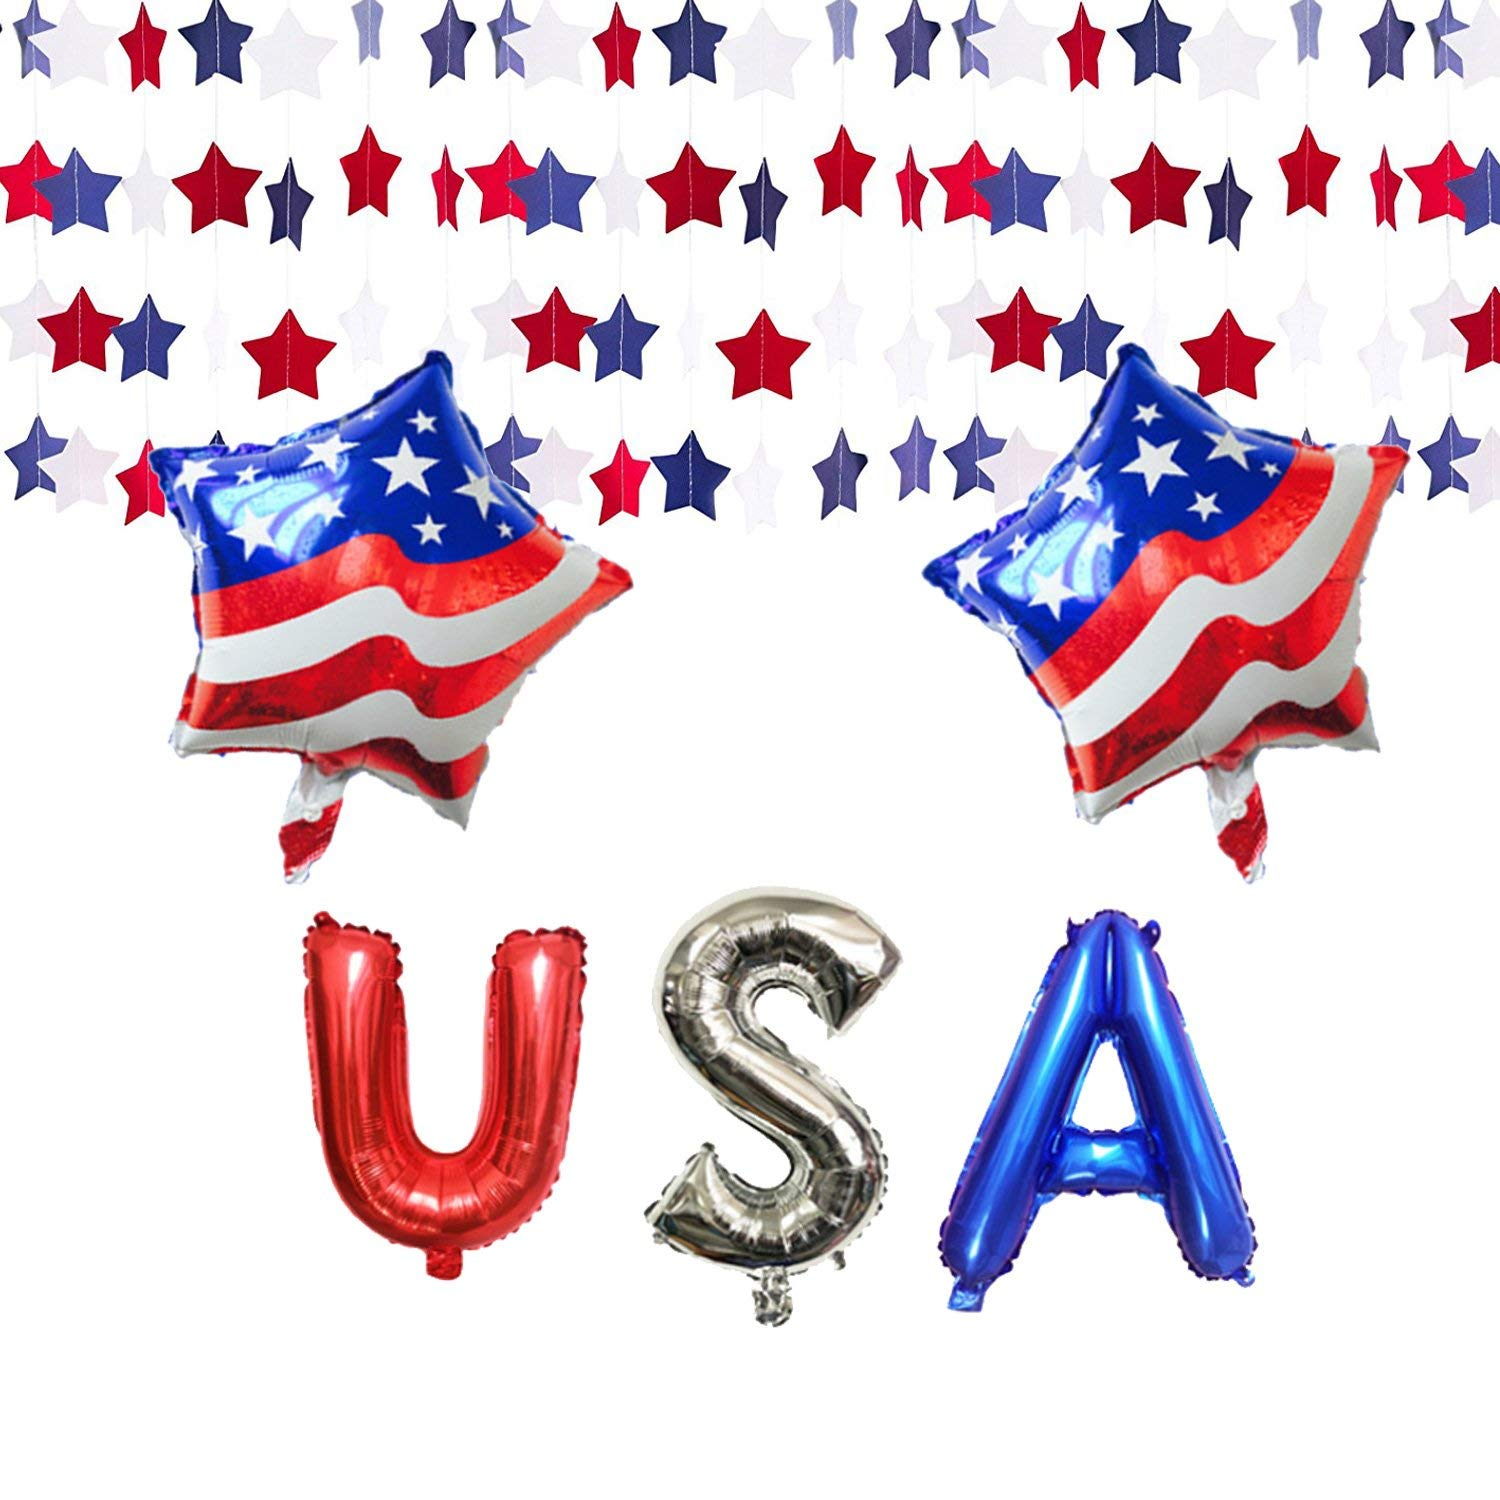 Home & Garden 10pcs July 4th American Independence Day Party Decor Balloons Banner Blue Star Red Stripe Latex Air Balloons Flag Decor Kids Toy Event & Party